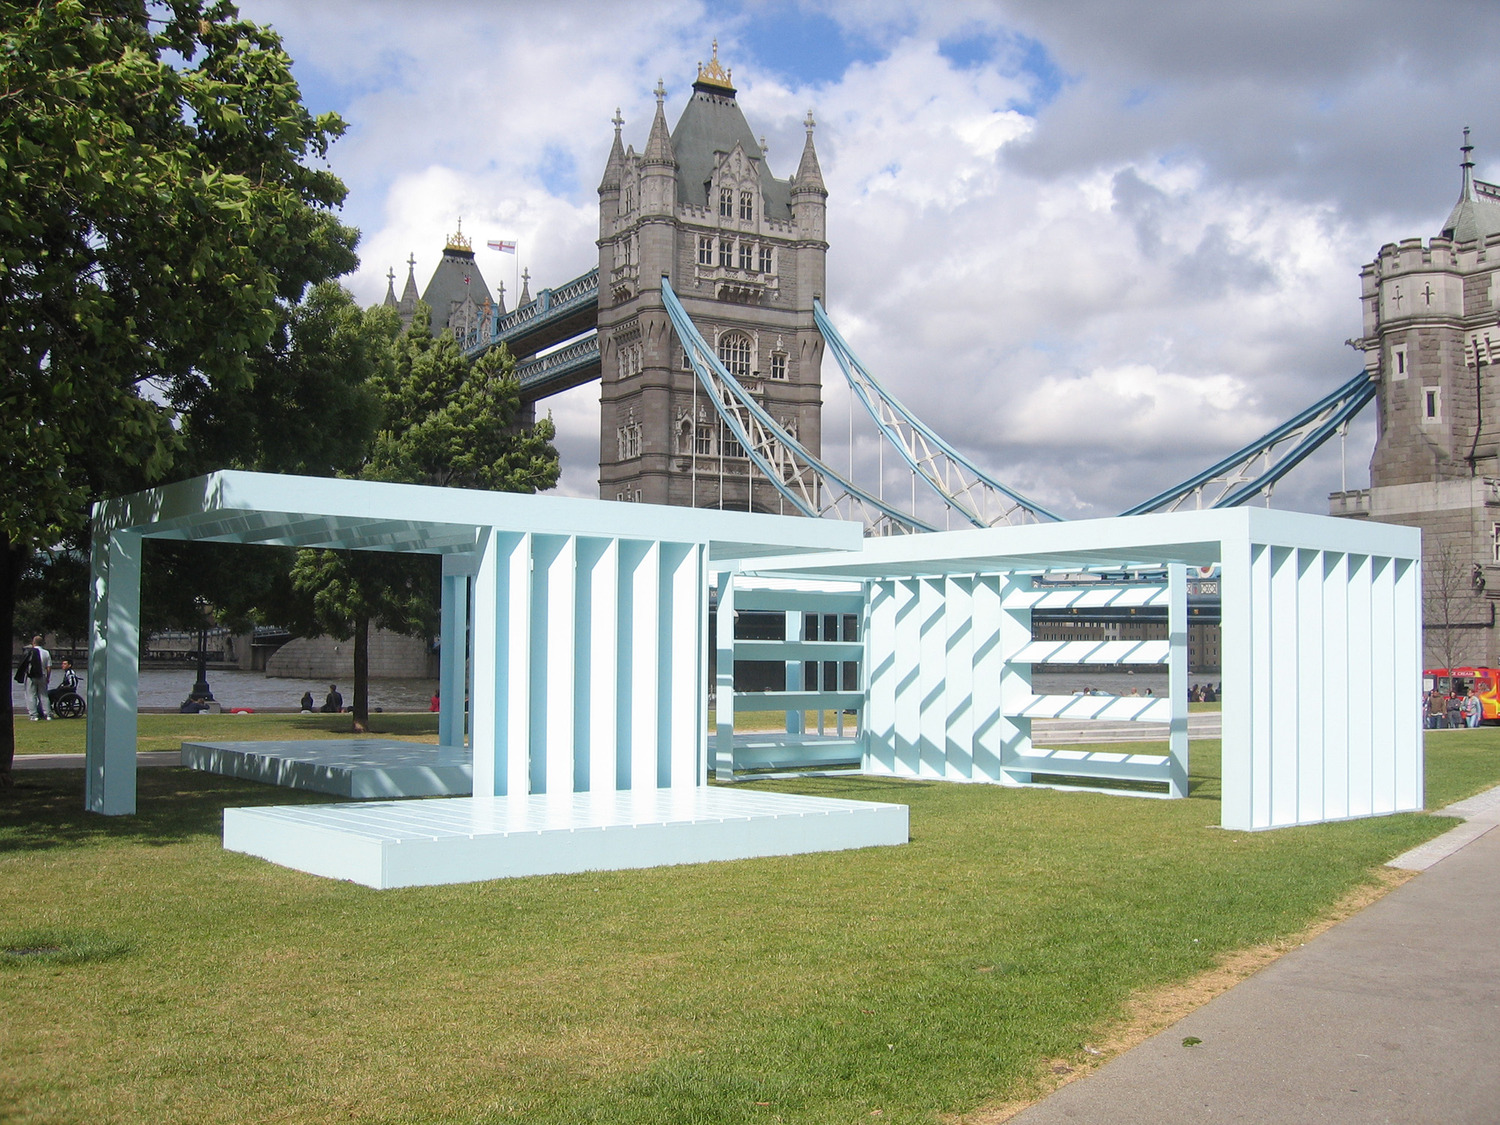 External photo of large light-blue abstract structure sitting on grassed areas with London Twoer Bridge in backcround